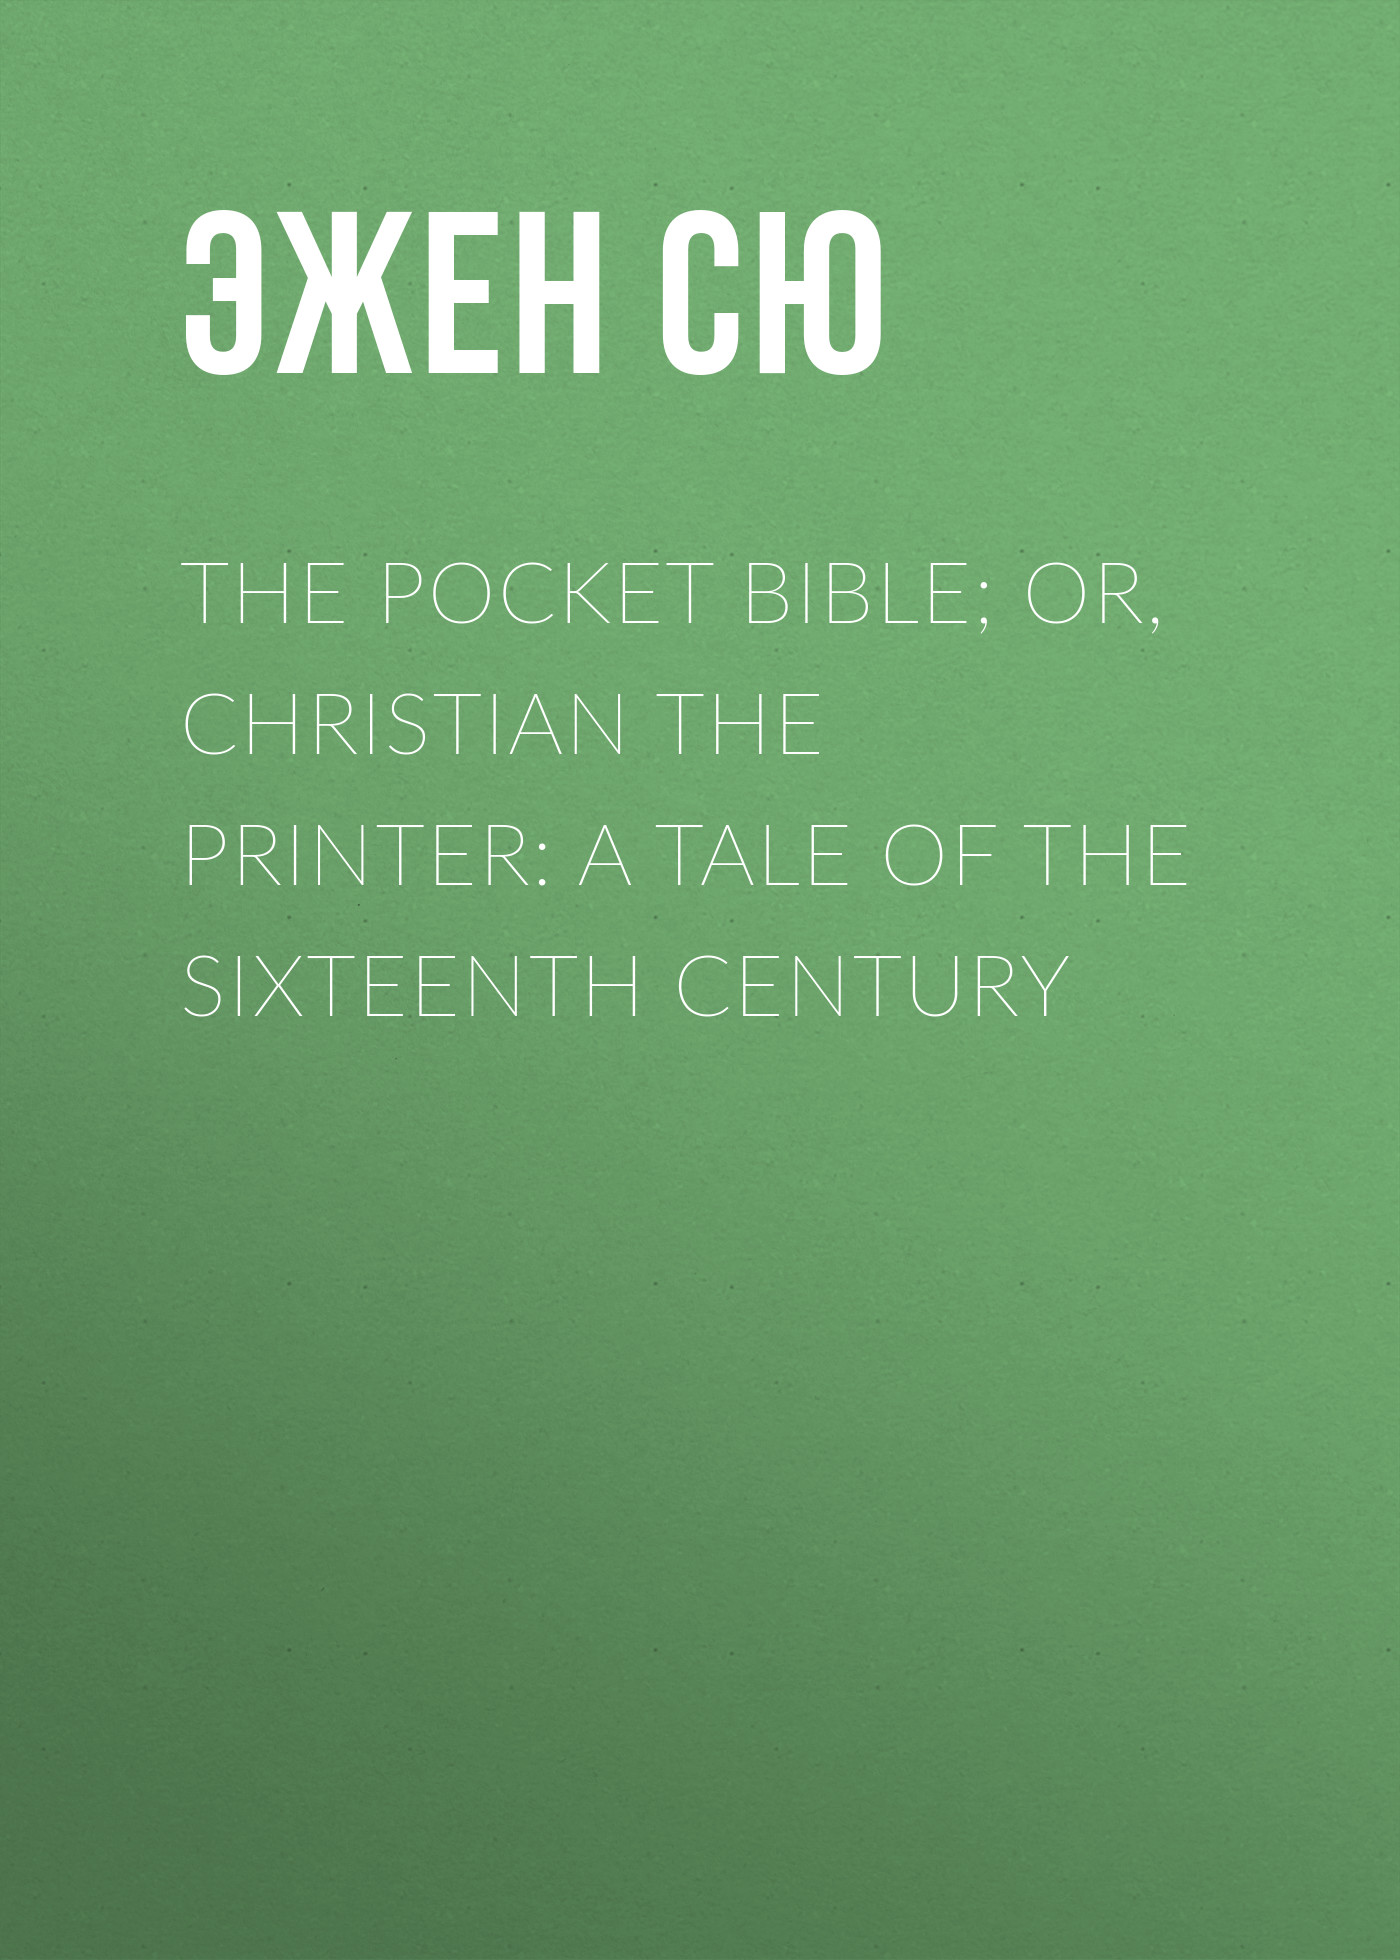 Эжен Сю The Pocket Bible; or, Christian the Printer: A Tale of the Sixteenth Century эжен сю the gold sickle or hena the virgin of the isle of sen a tale of druid gaul